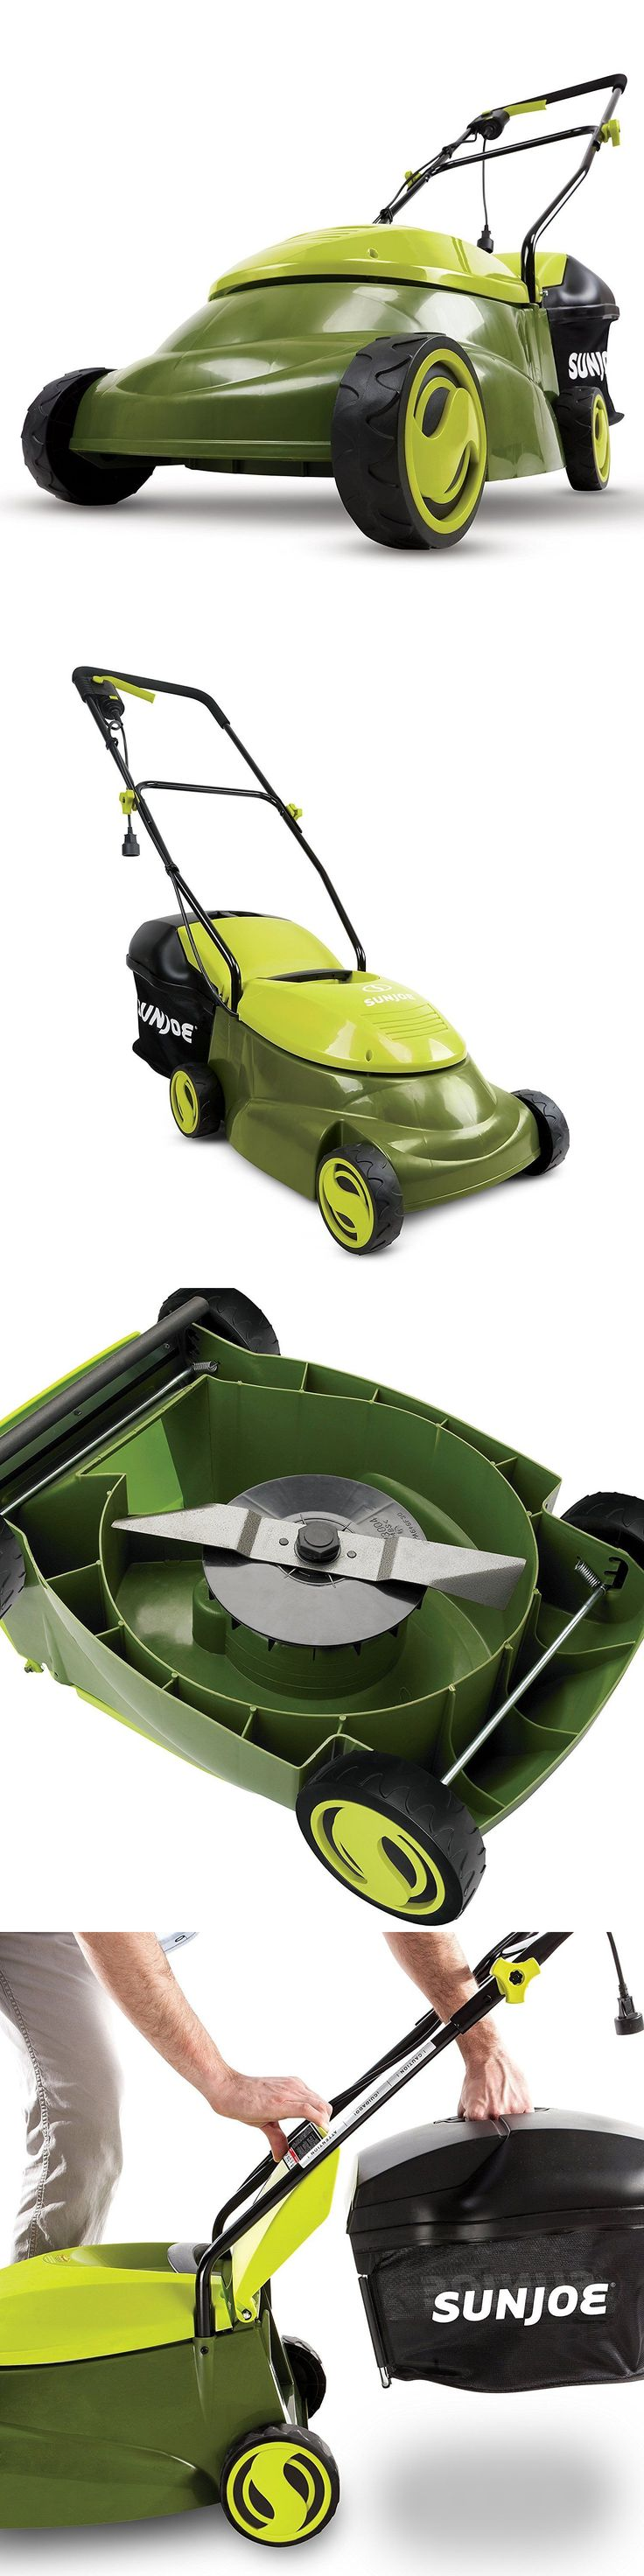 Walk-Behind Mowers 71272: Best Electric Cordless Hand Push Cheap Portable Walk Behind Lawn Mower Clearance -> BUY IT NOW ONLY: $120.14 on eBay!